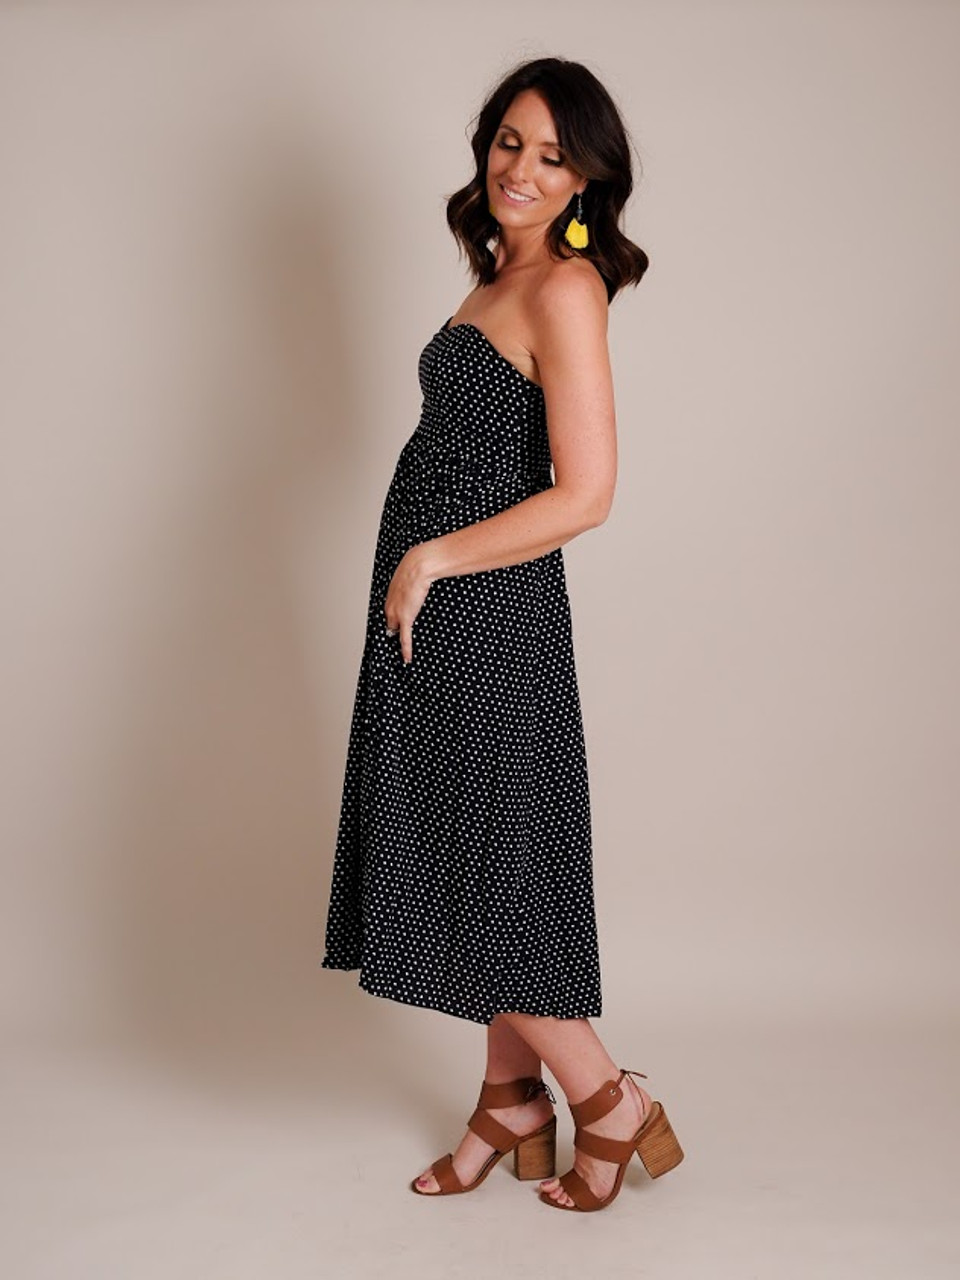 Strapless Polka Dot Navy & White Dress